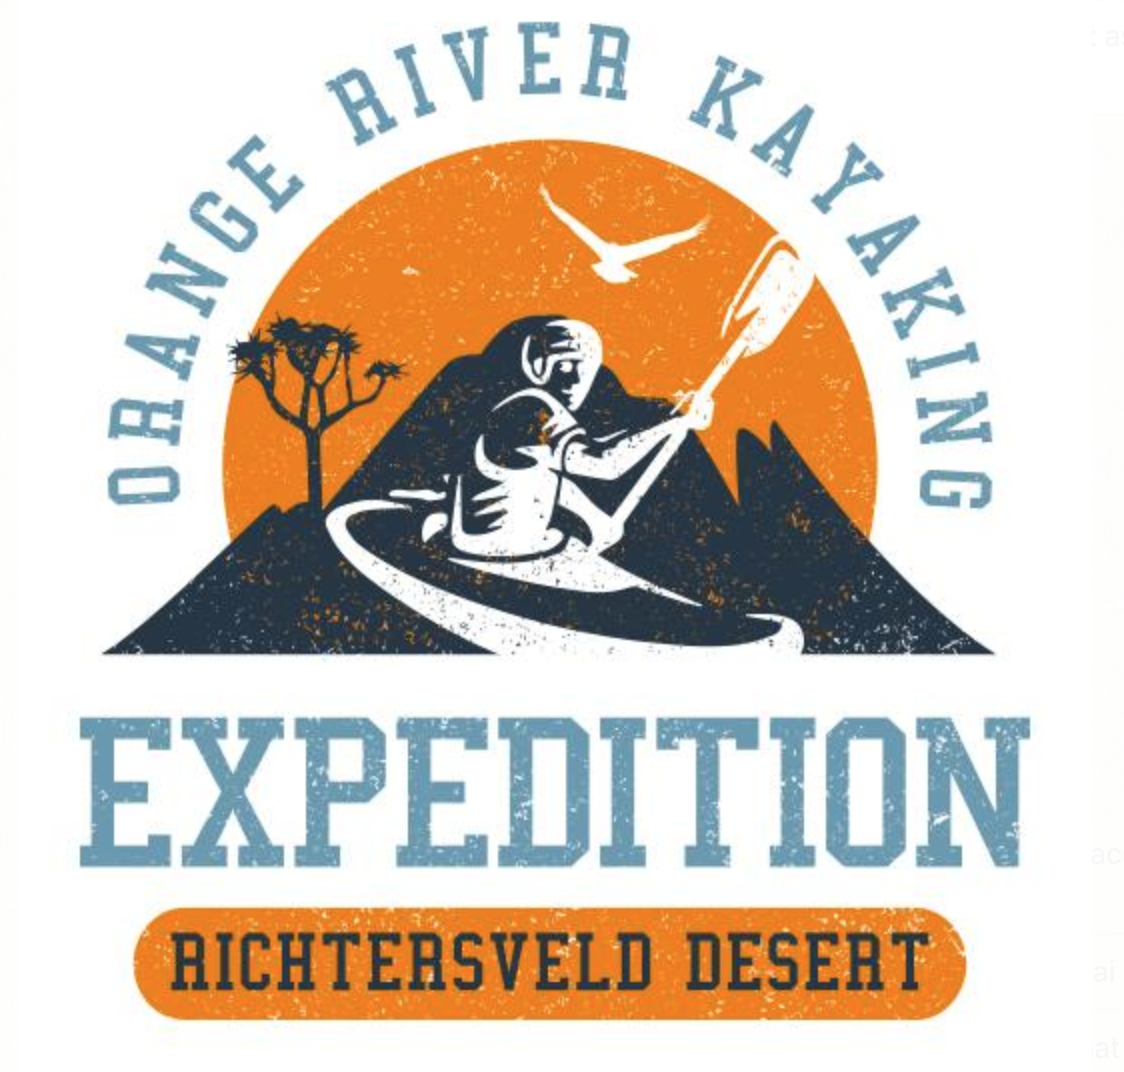 Orange River Kayaking Expedition Richtersveld Desert